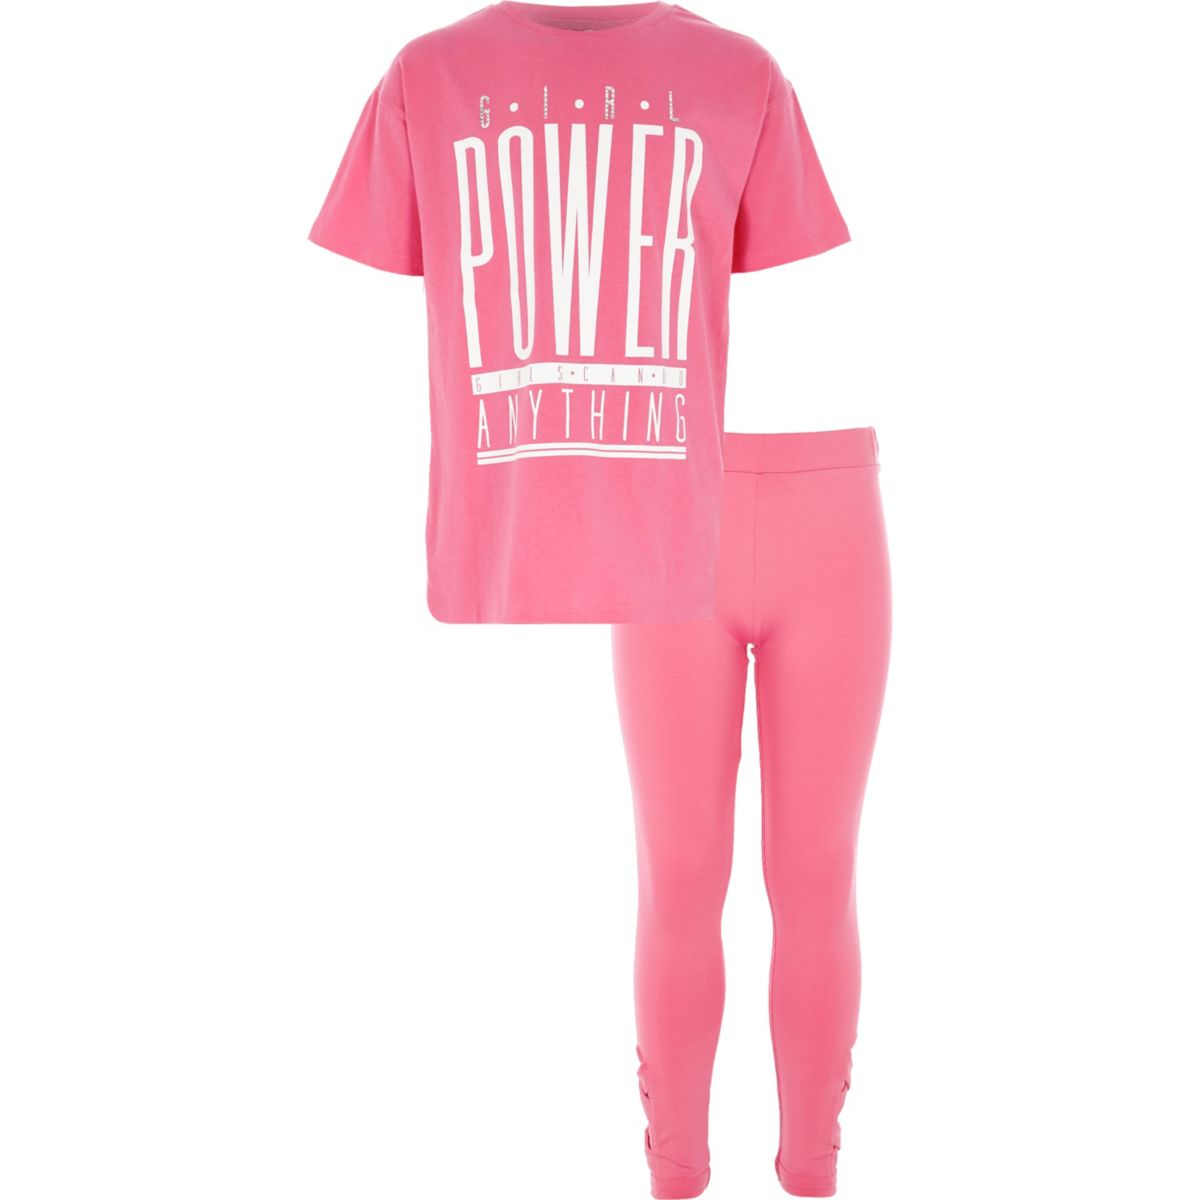 Tenue rose à strass « girl power » pour fille